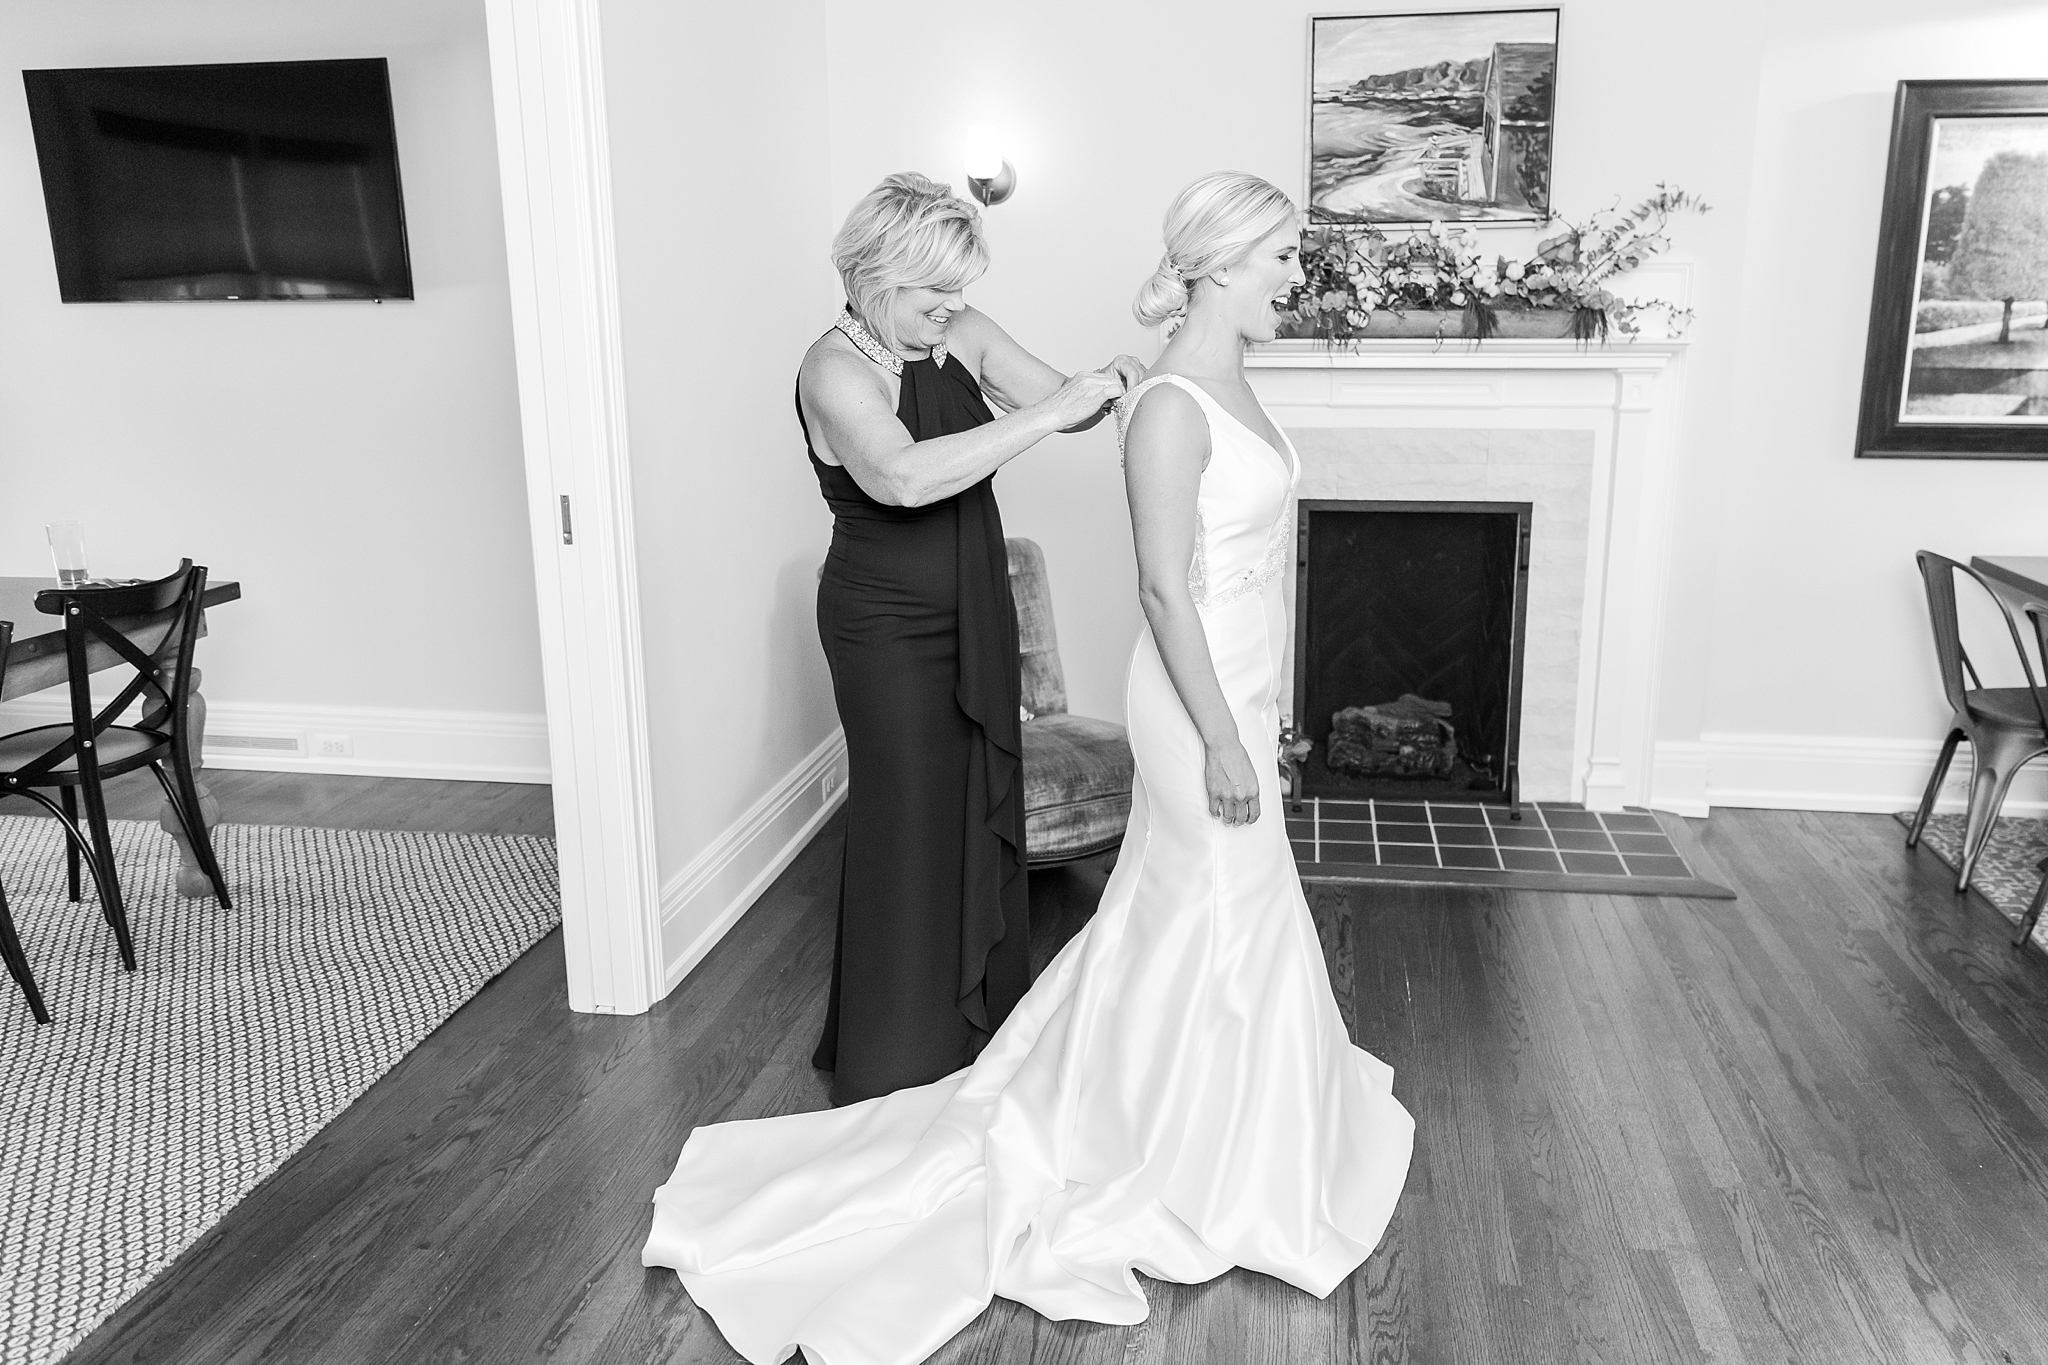 casually-chic-modern-wedding-photos-at-the-chapman-house-in-rochester-michigan-by-courtney-carolyn-photography_0006.jpg